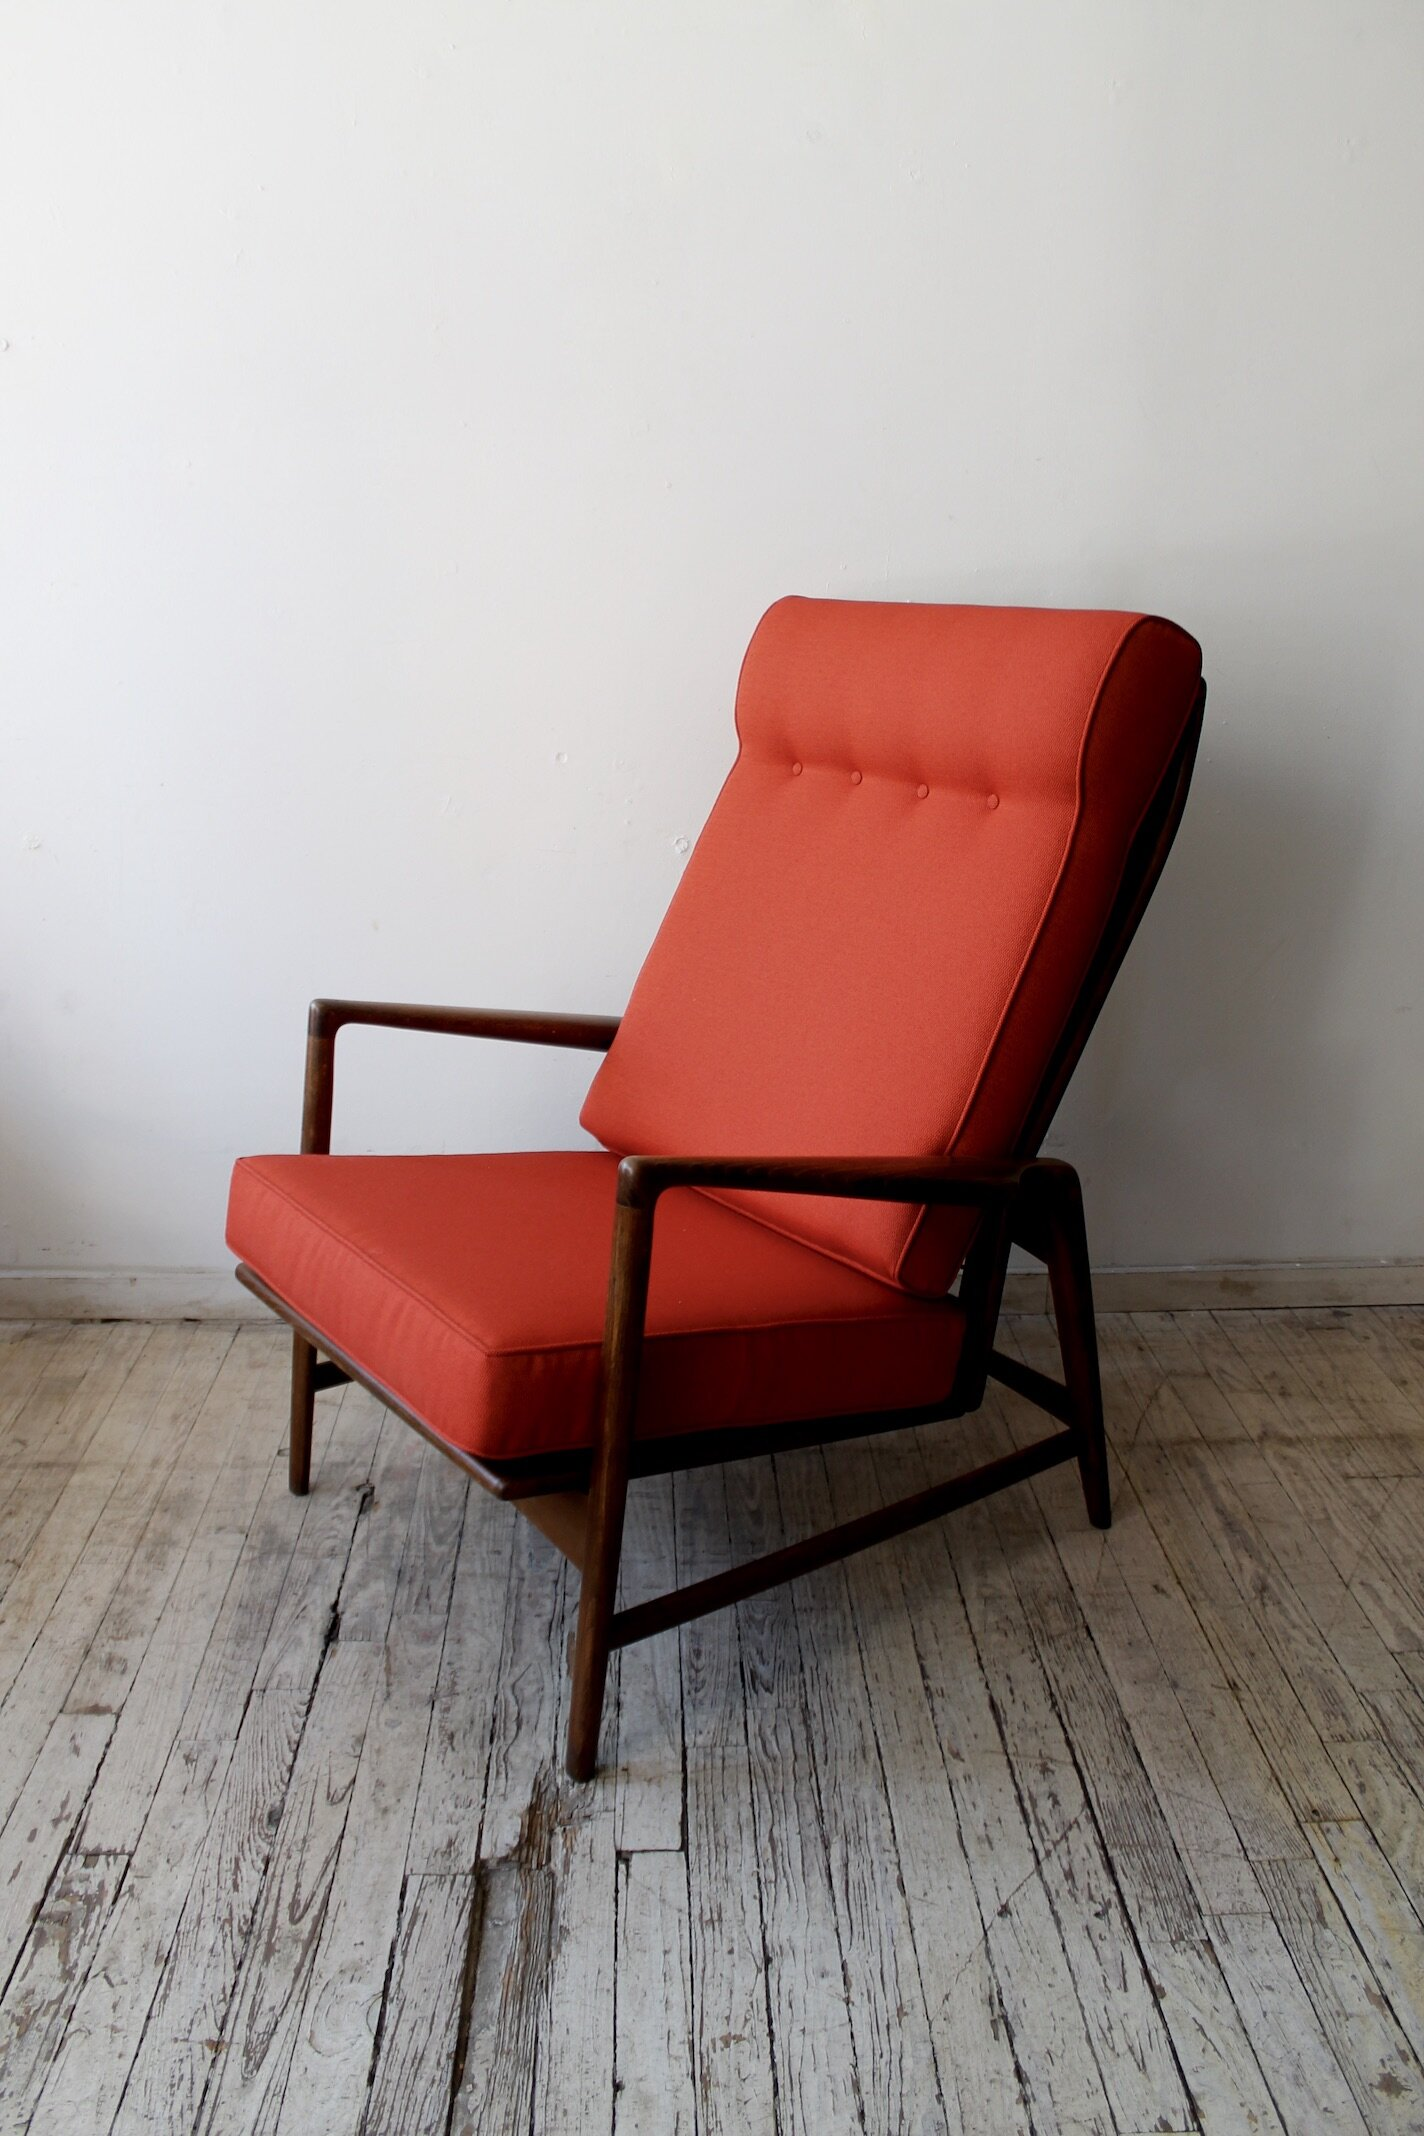 Vintage Mid Century Lounge Chair Red Cabin Modern Ny Furniture Textiles And Housewares Brooklyn Nyc